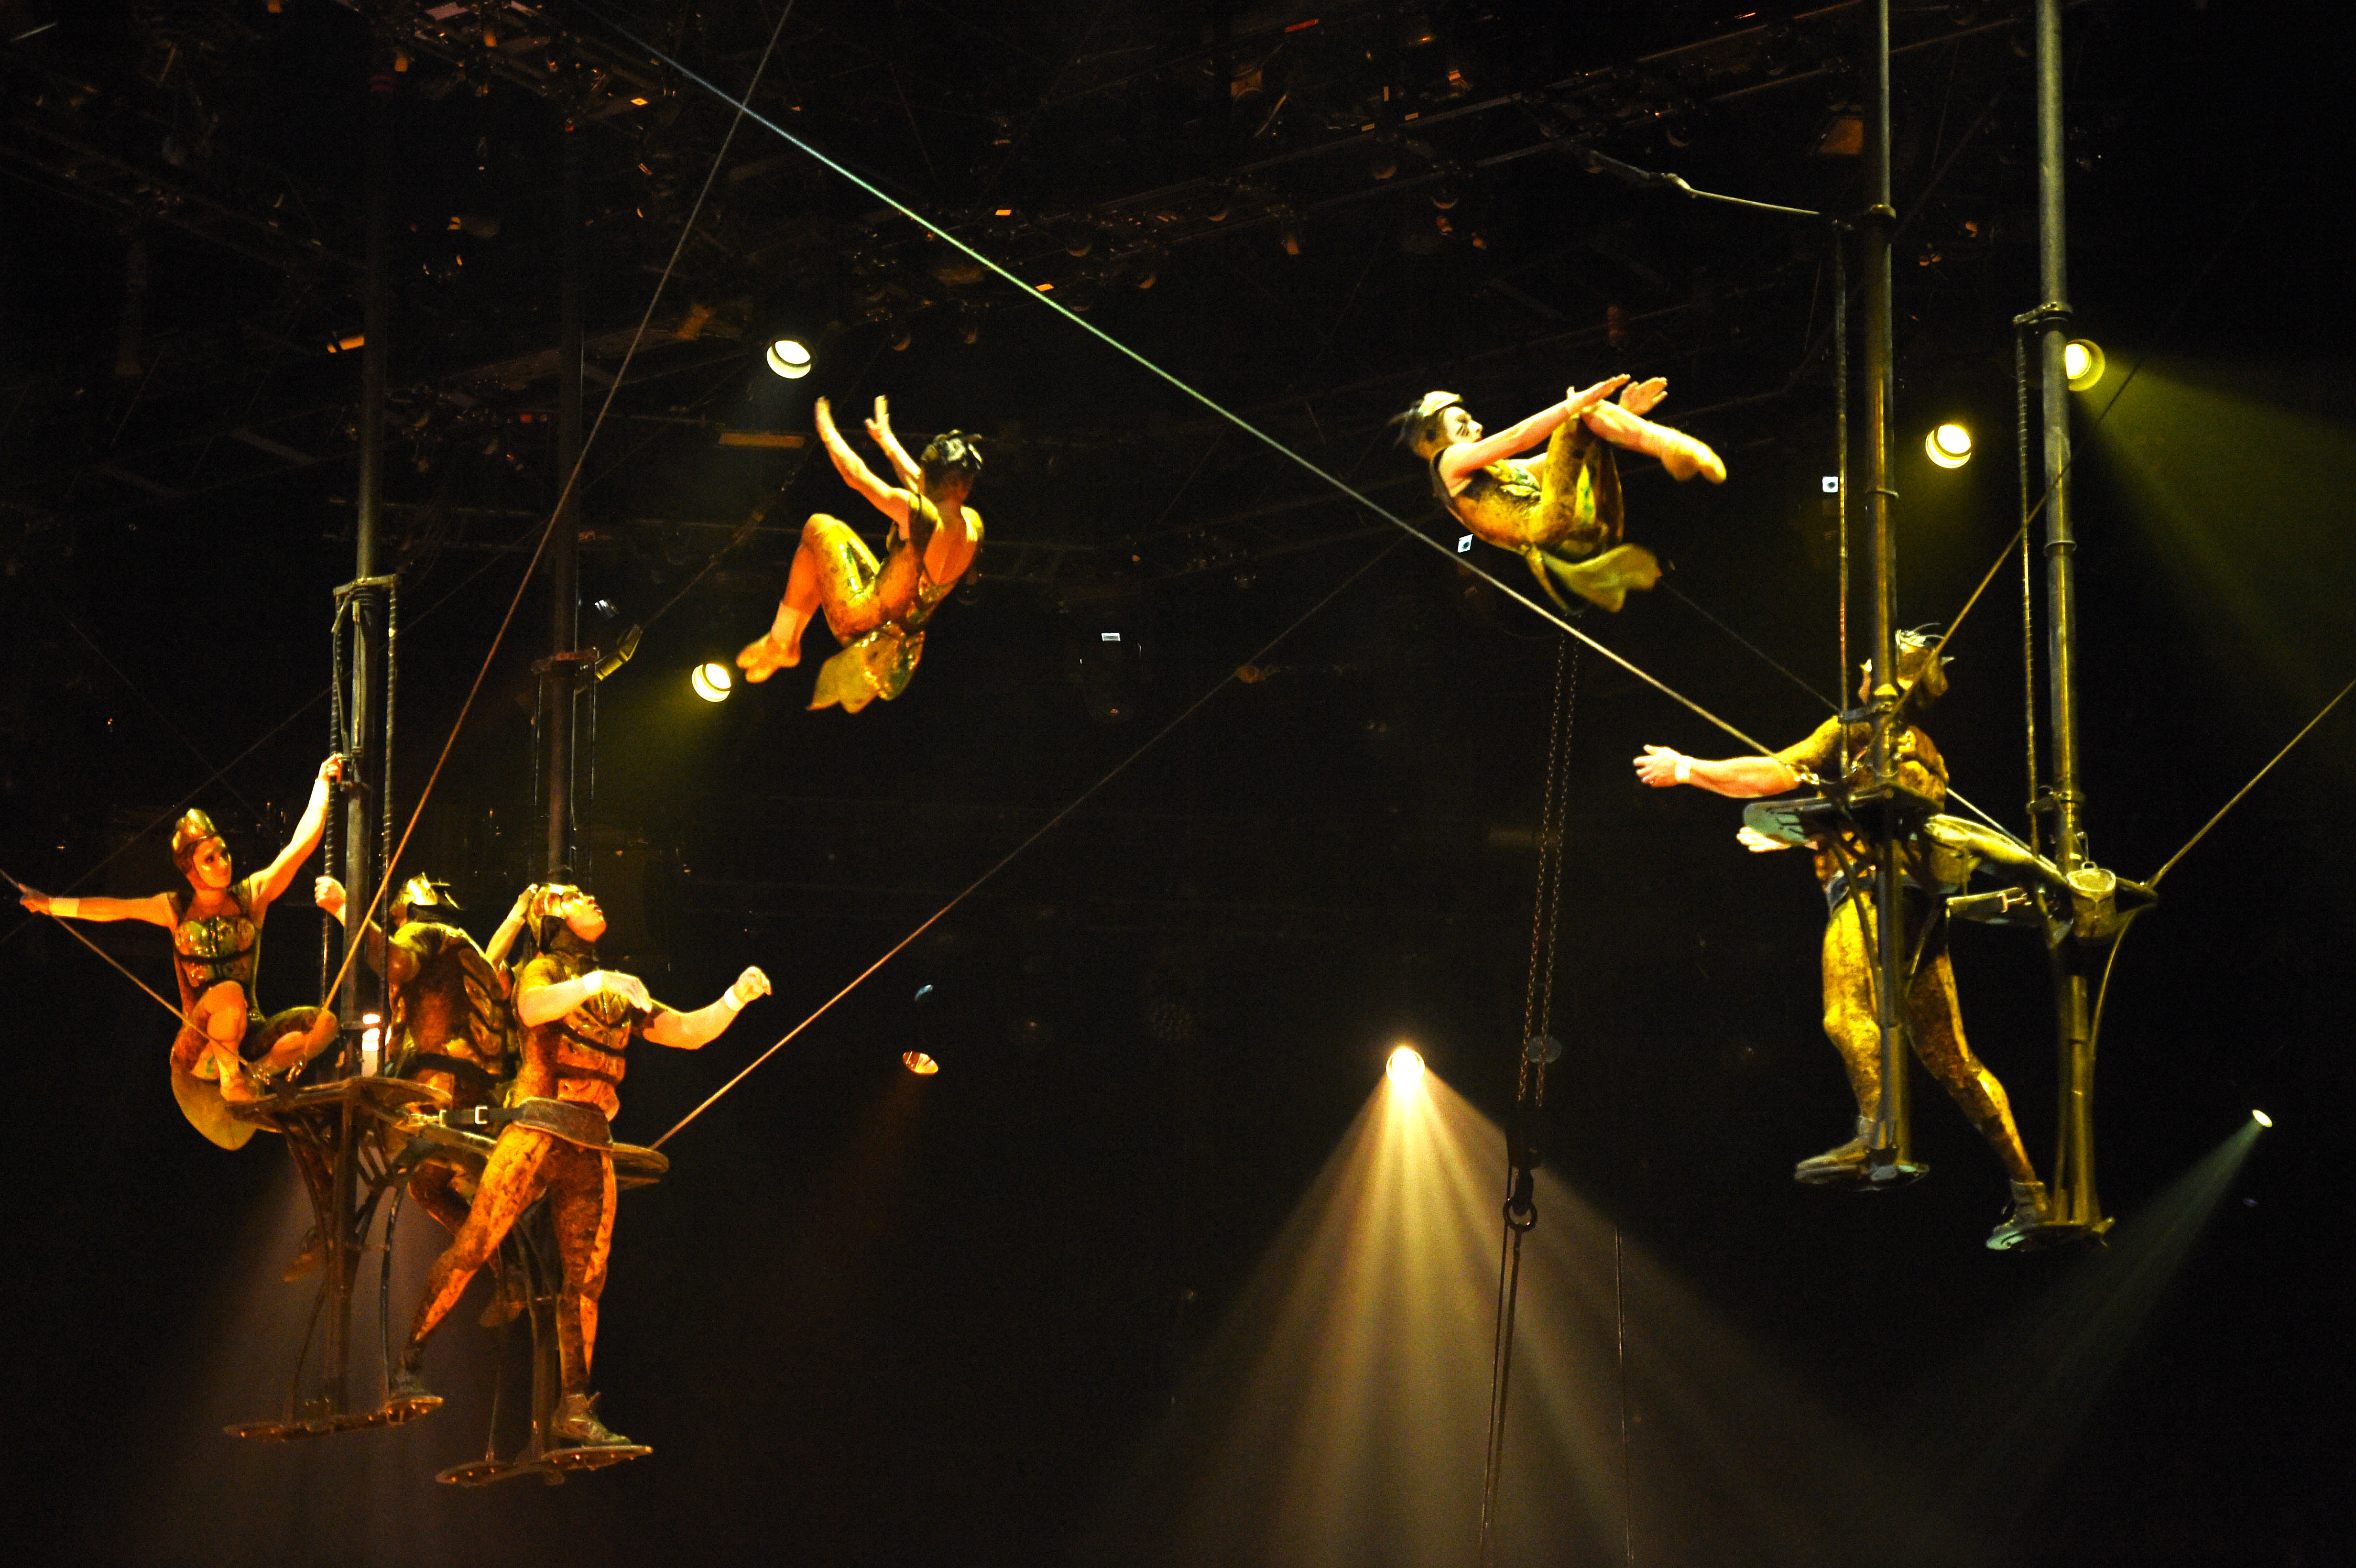 cirue du soleil A young woman is entranced by an aerialist when they fall into the dreamlike world of cirque du soleil and are separated, they travel through the different tent worlds trying to find each other.